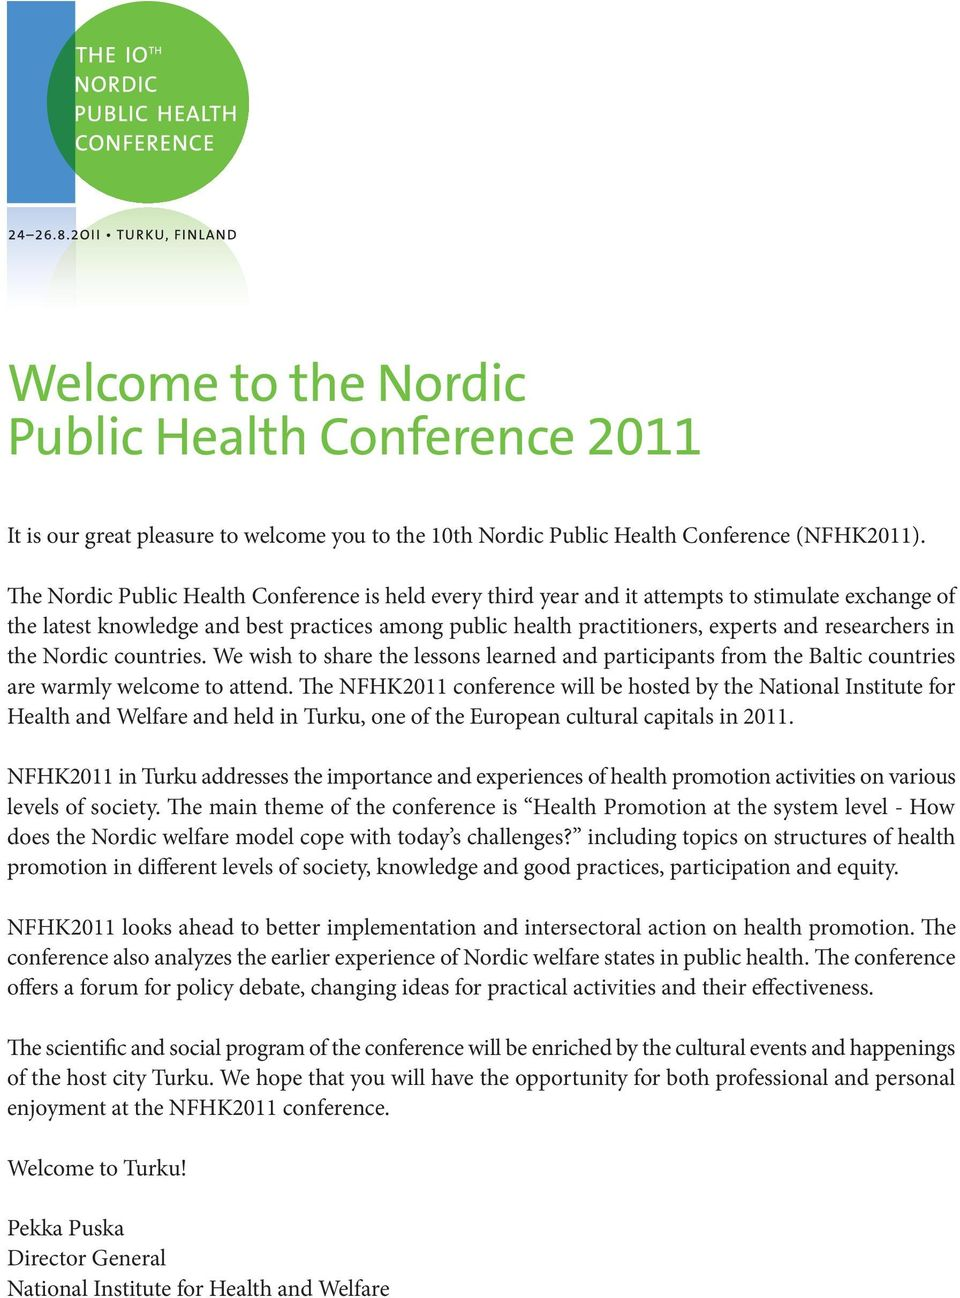 researchers in the Nordic countries. We wish to share the lessons learned and participants from the Baltic countries are warmly welcome to attend.